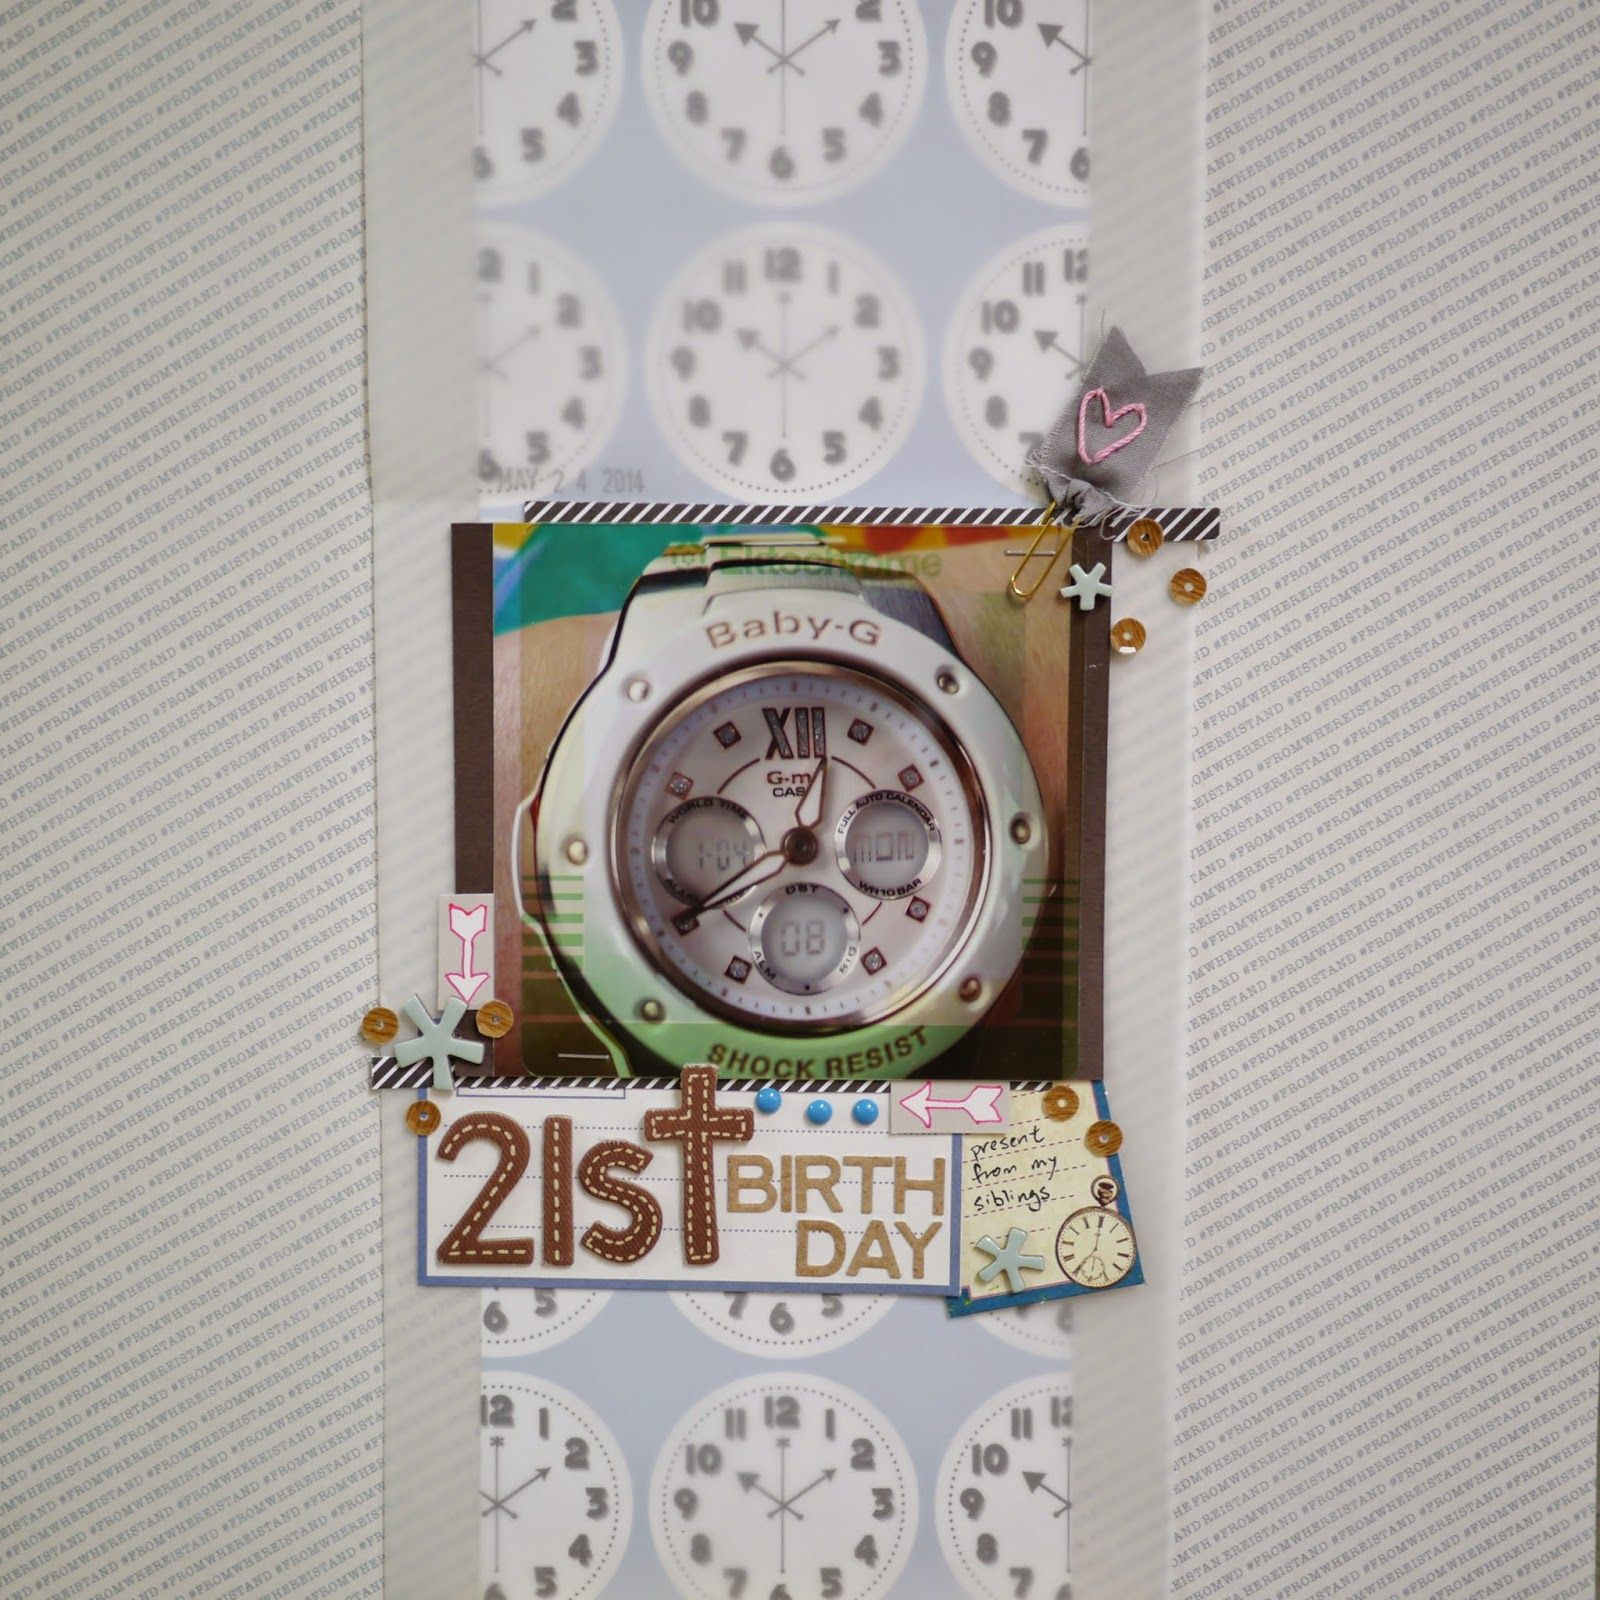 21st Birthday by PeiFang_Alice @ alice-in-craftyland.blogspot.com